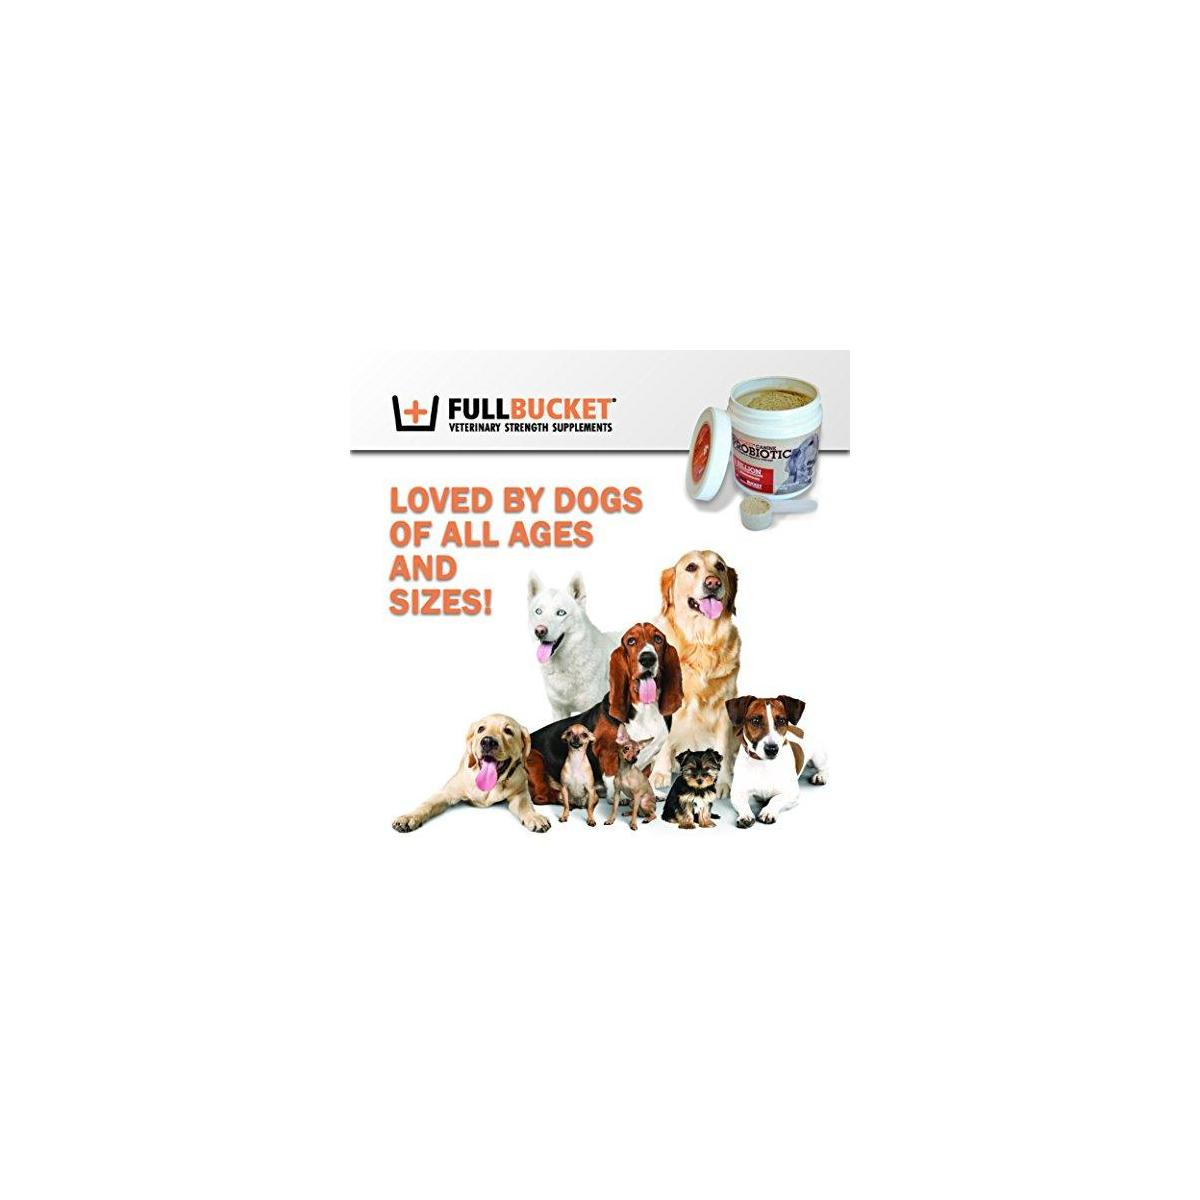 FullBucket Daily Dog Probiotic - Support Natural Digestion, Treat & Prevent Diarrhea - Probiotics, Prebiotics & Digestive Enzymes All in One Tasty Probiotic Powder for Dogs